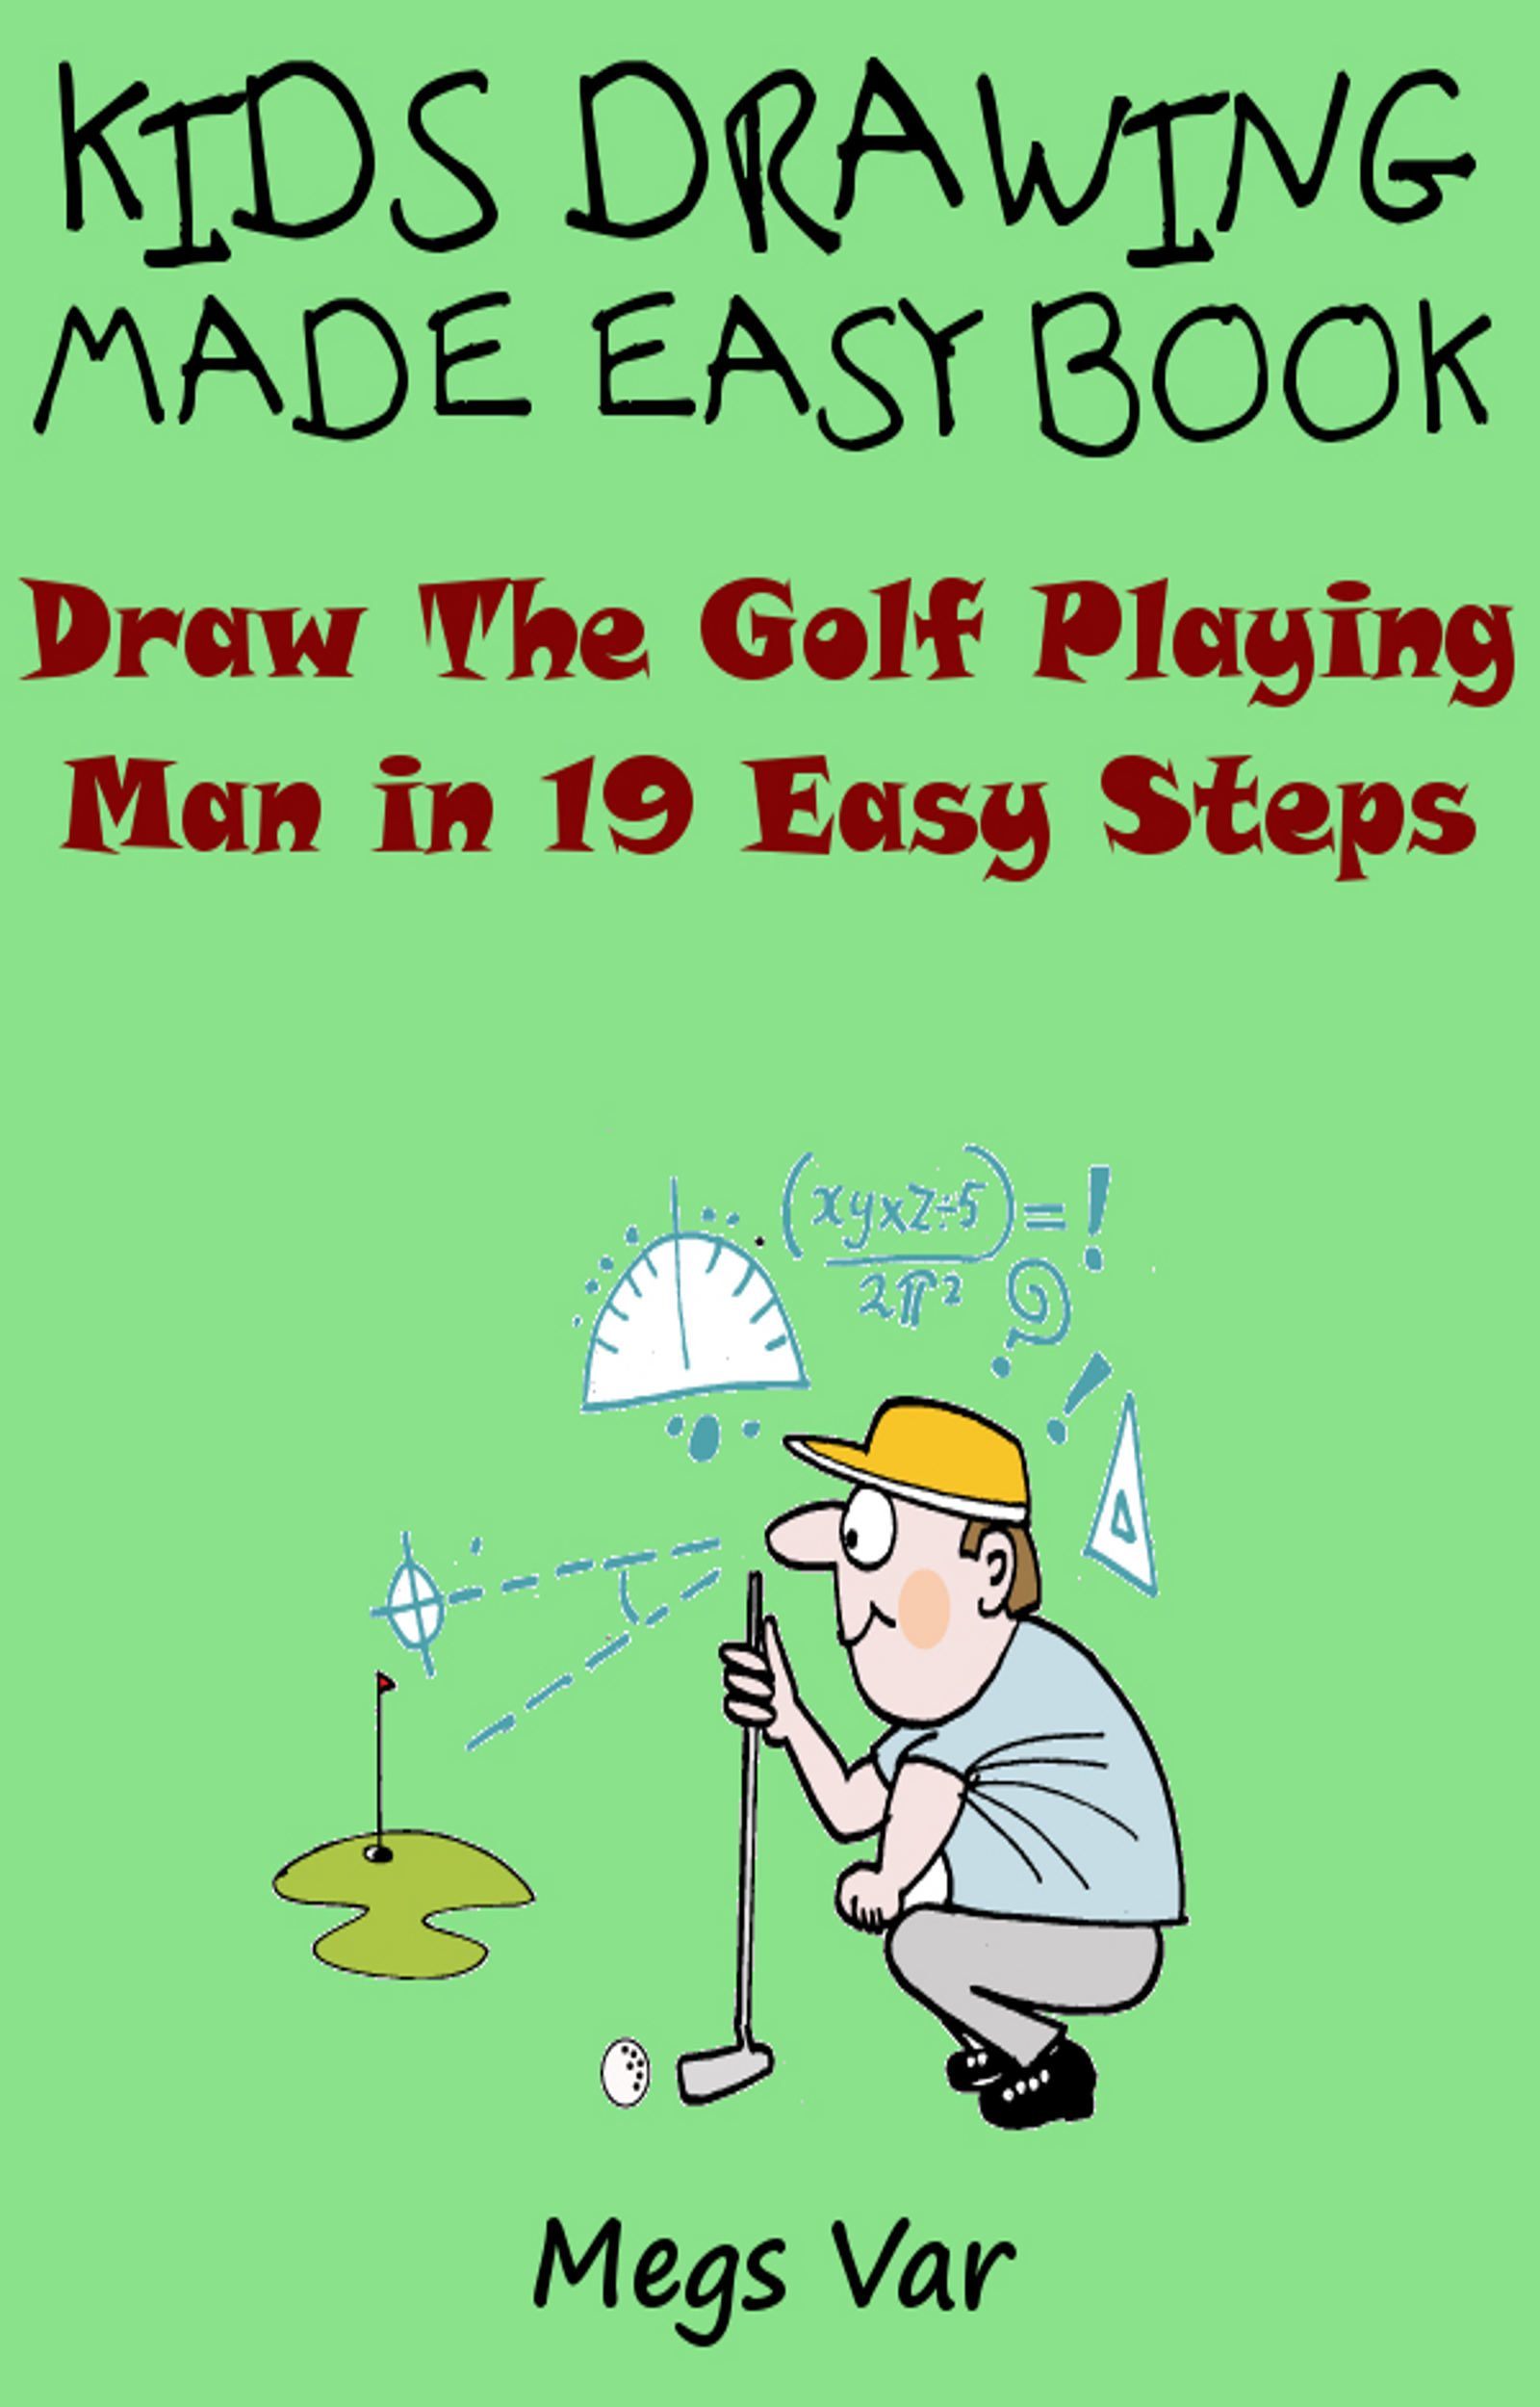 smashwords u2013 kids drawing made easy book draw the golf playing